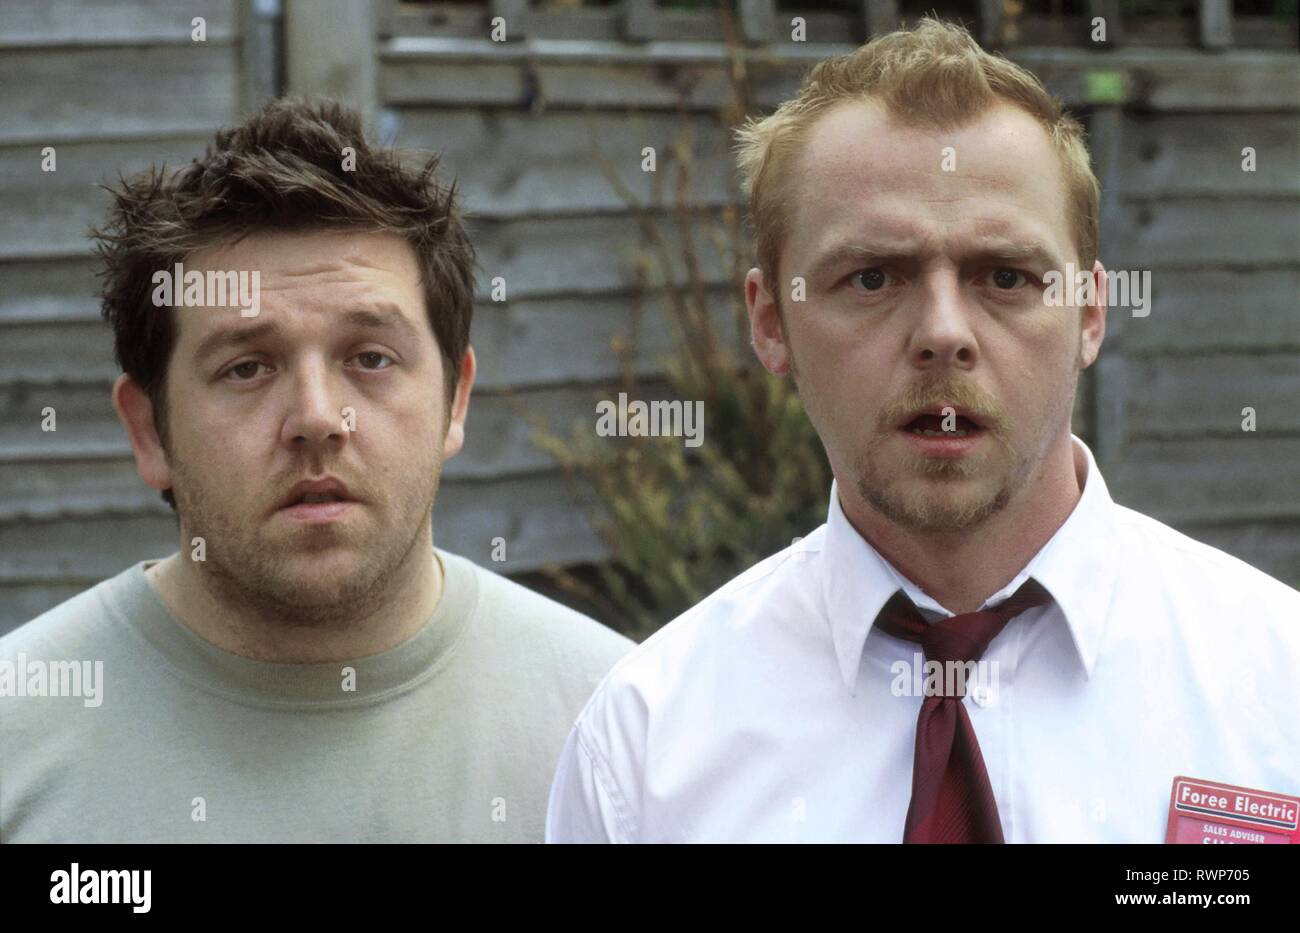 FROST,PEGG, SHAUN OF THE DEAD, 2004 - Stock Image